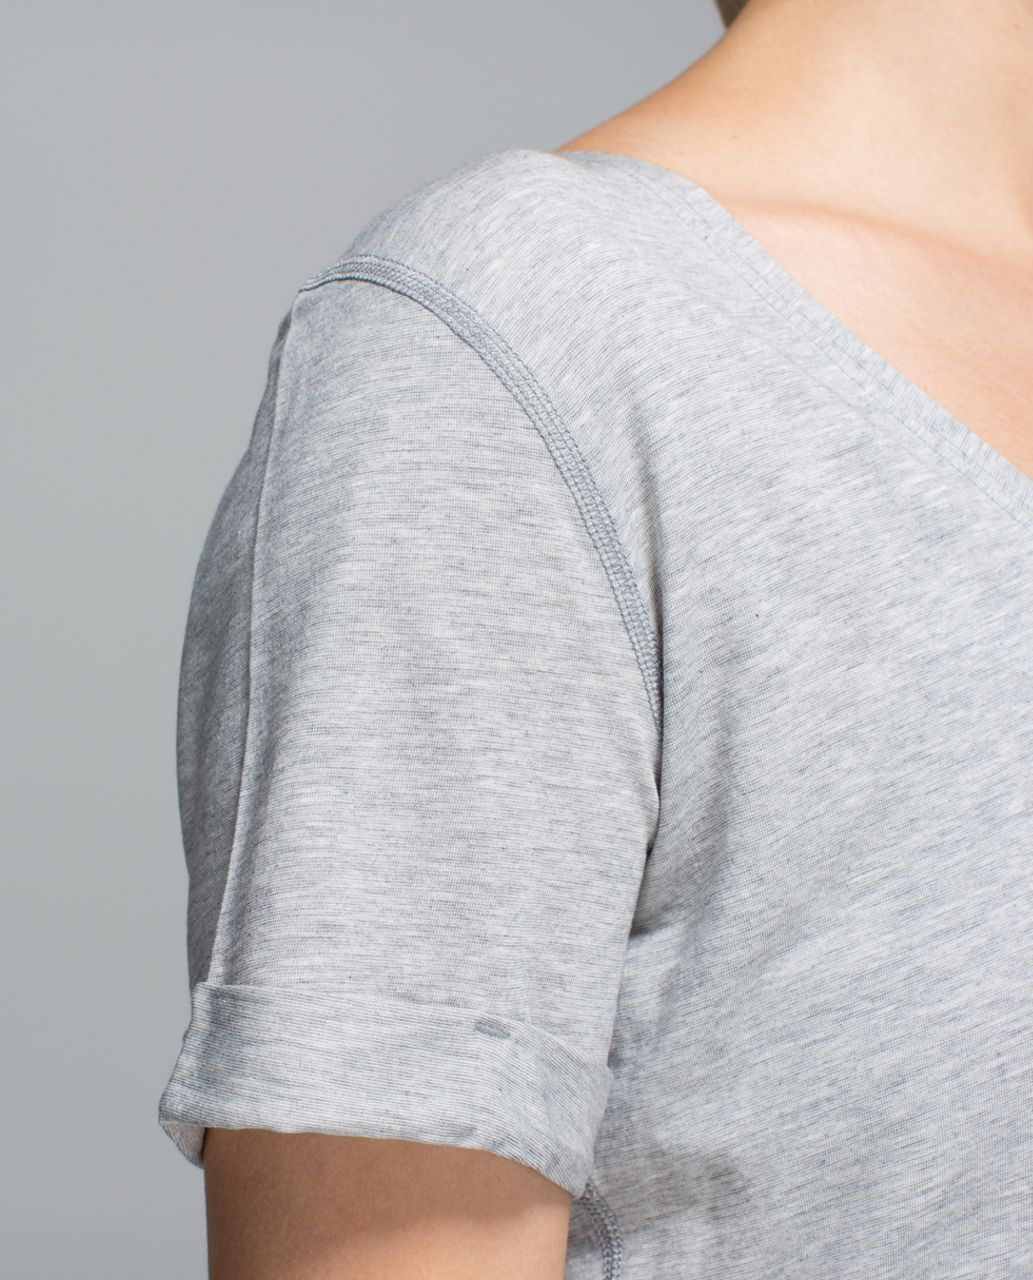 Lululemon Love Tee - Mini Stripe Heathered Medium Grey Angel Wing